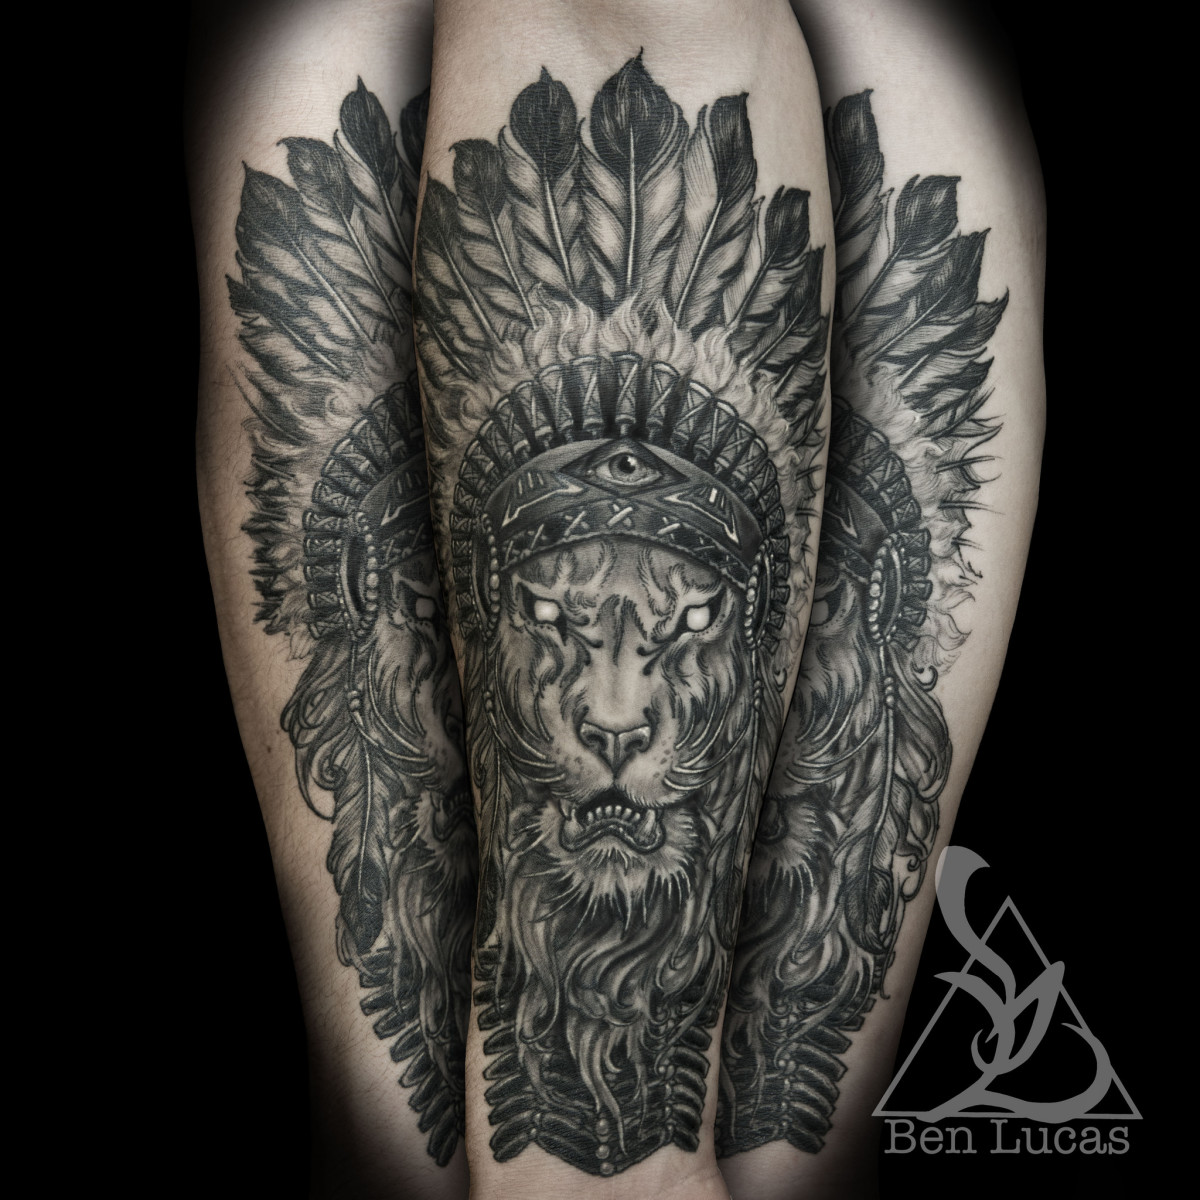 Native American Feather Tattoo Meanings, Ideas, and Design Options